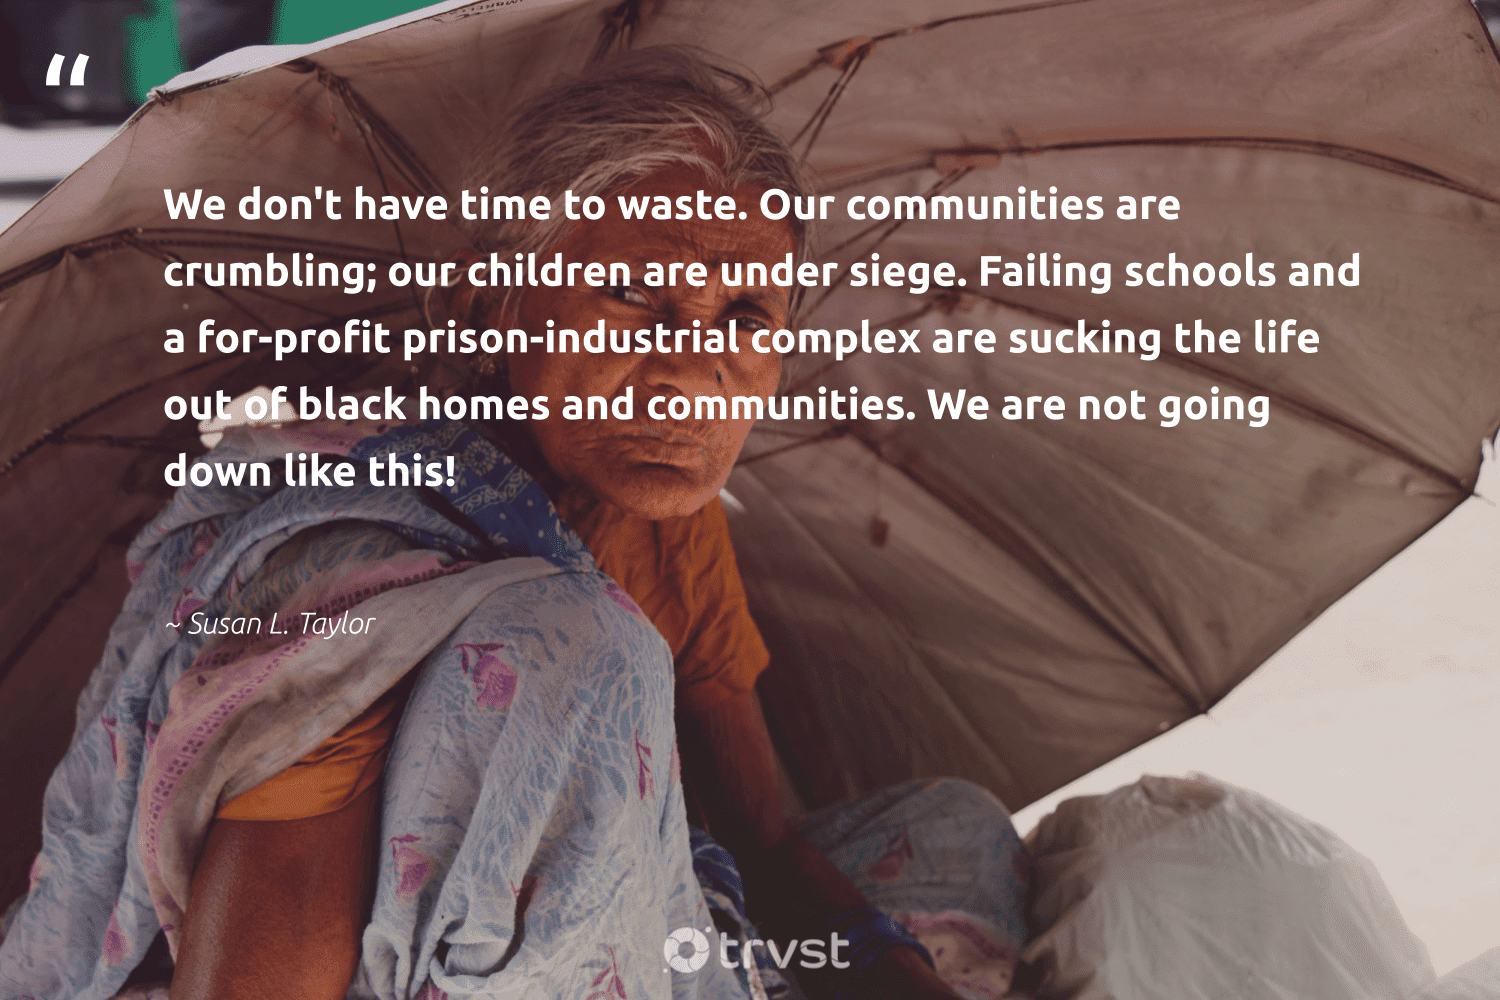 """""""We don't have time to waste. Our communities are crumbling; our children are under siege. Failing schools and a for-profit prison-industrial complex are sucking the life out of black homes and communities. We are not going down like this!""""  - Susan L. Taylor #trvst #quotes #waste #communities #children #makeadifference #socialchange #weareallone #planetearthfirst #bethechange #dotherightthing #giveback"""